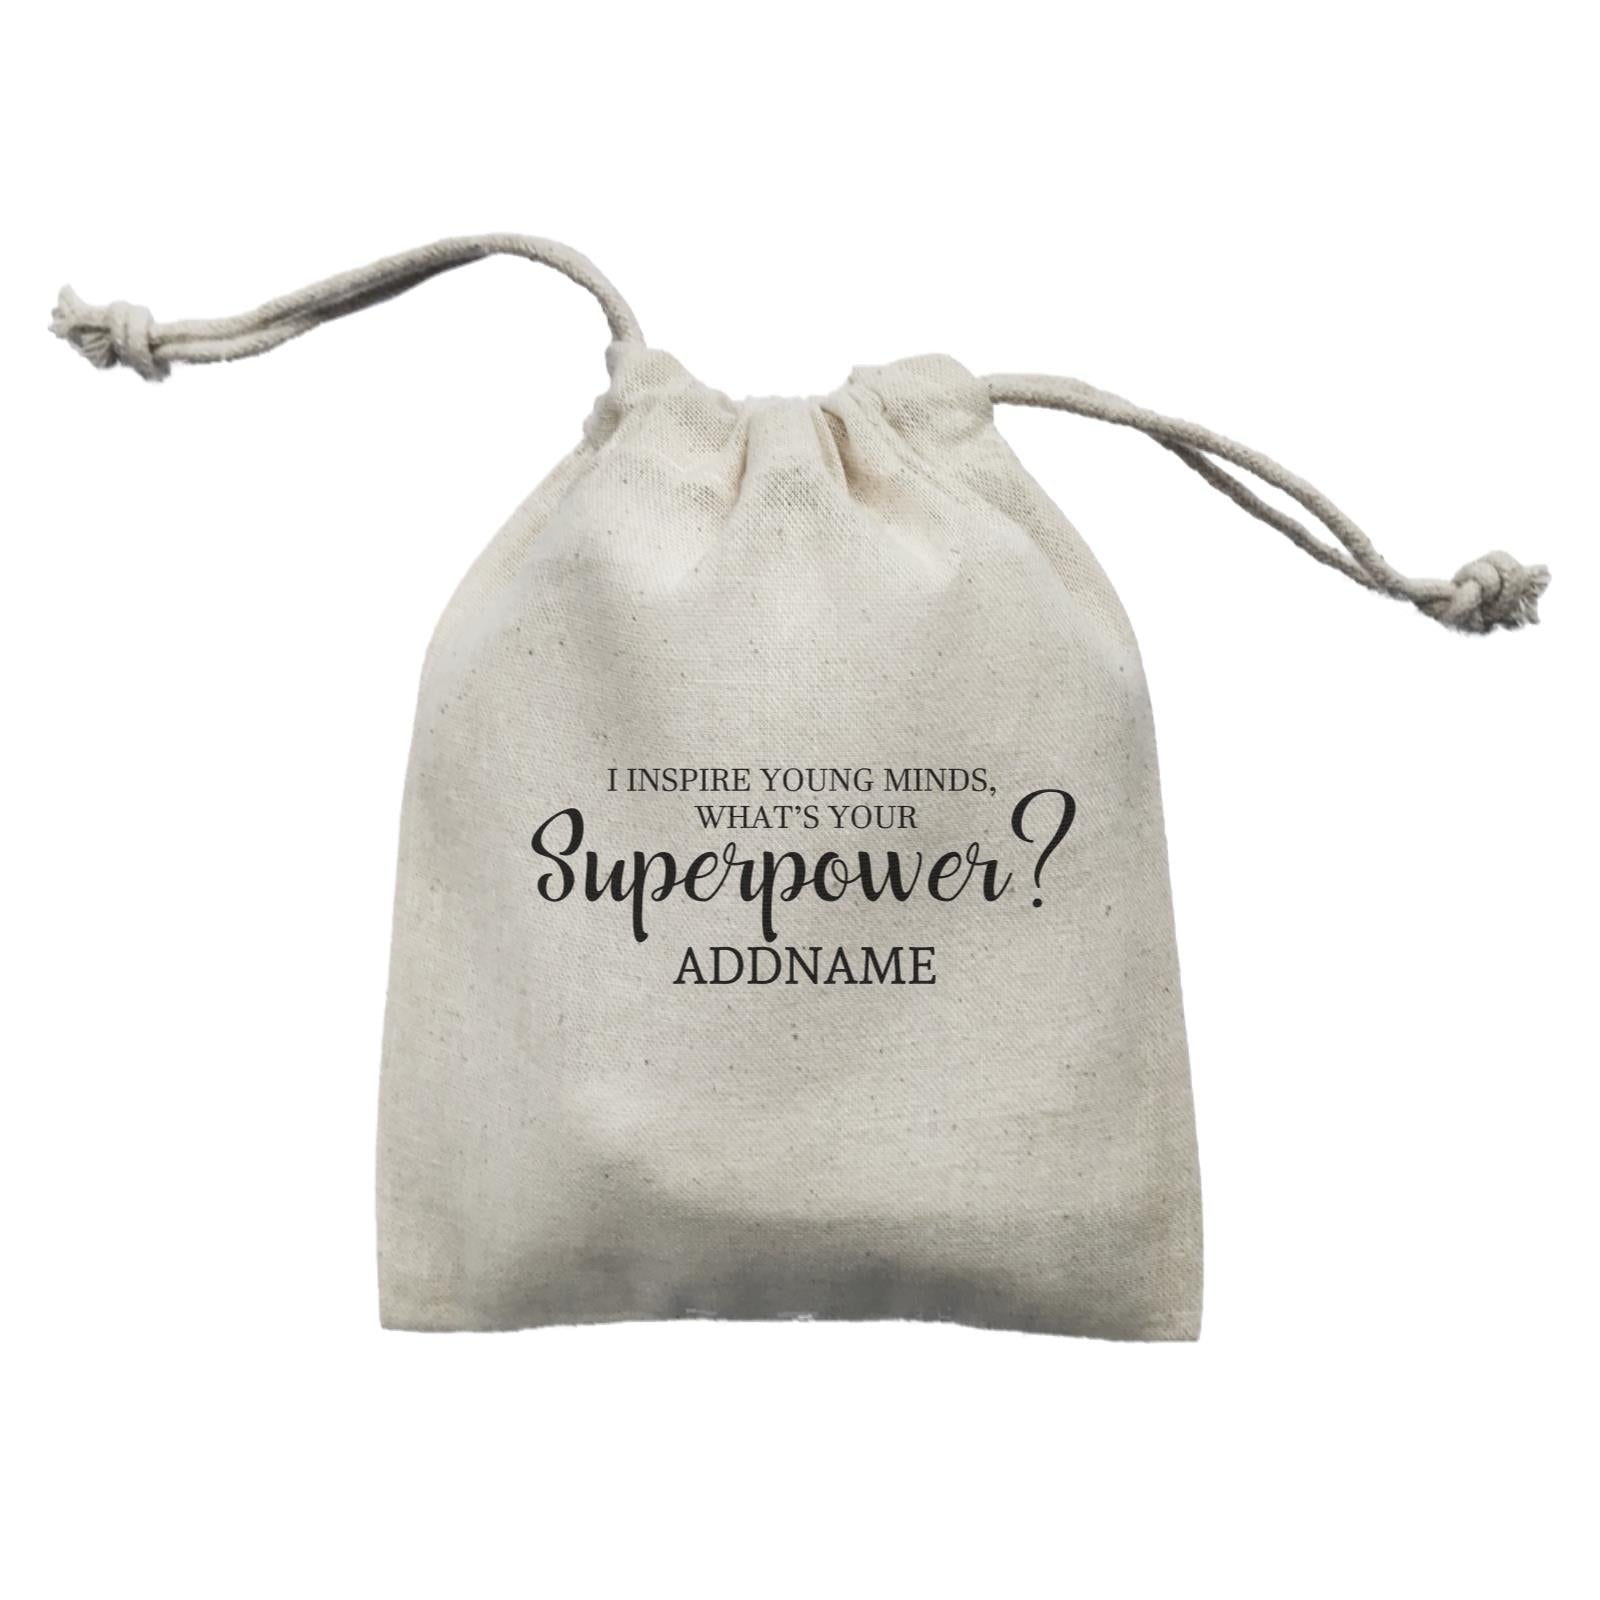 Super Teachers I Inspire Young Minds What's Your Superpower Addname Mini Accessories Mini Pouch